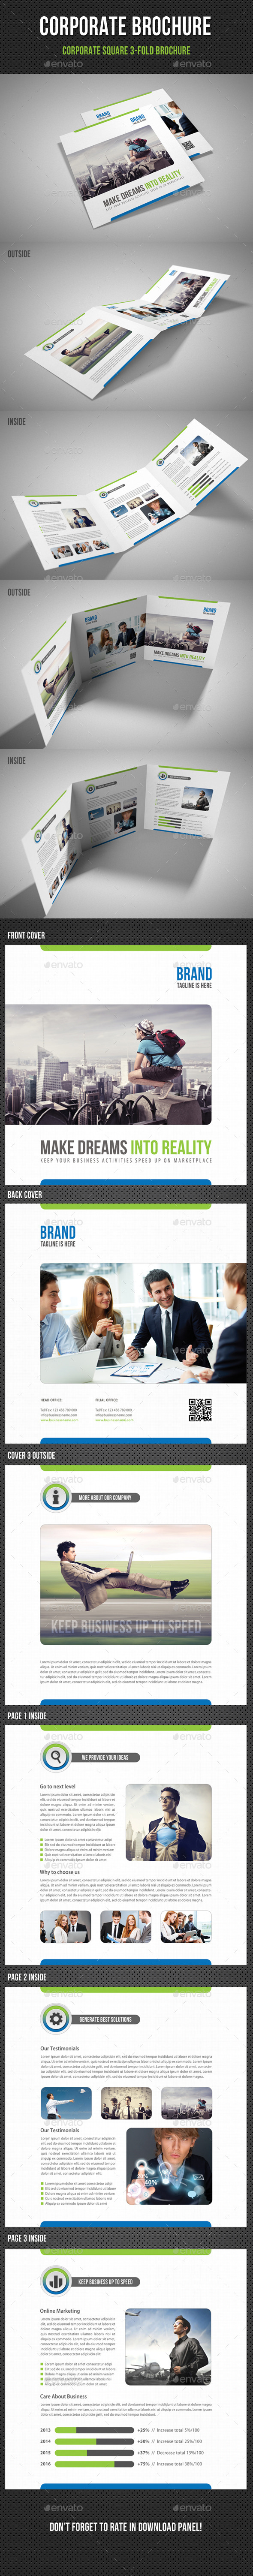 GraphicRiver Corporate Business Square 3-Fold Brochure V04 11425283